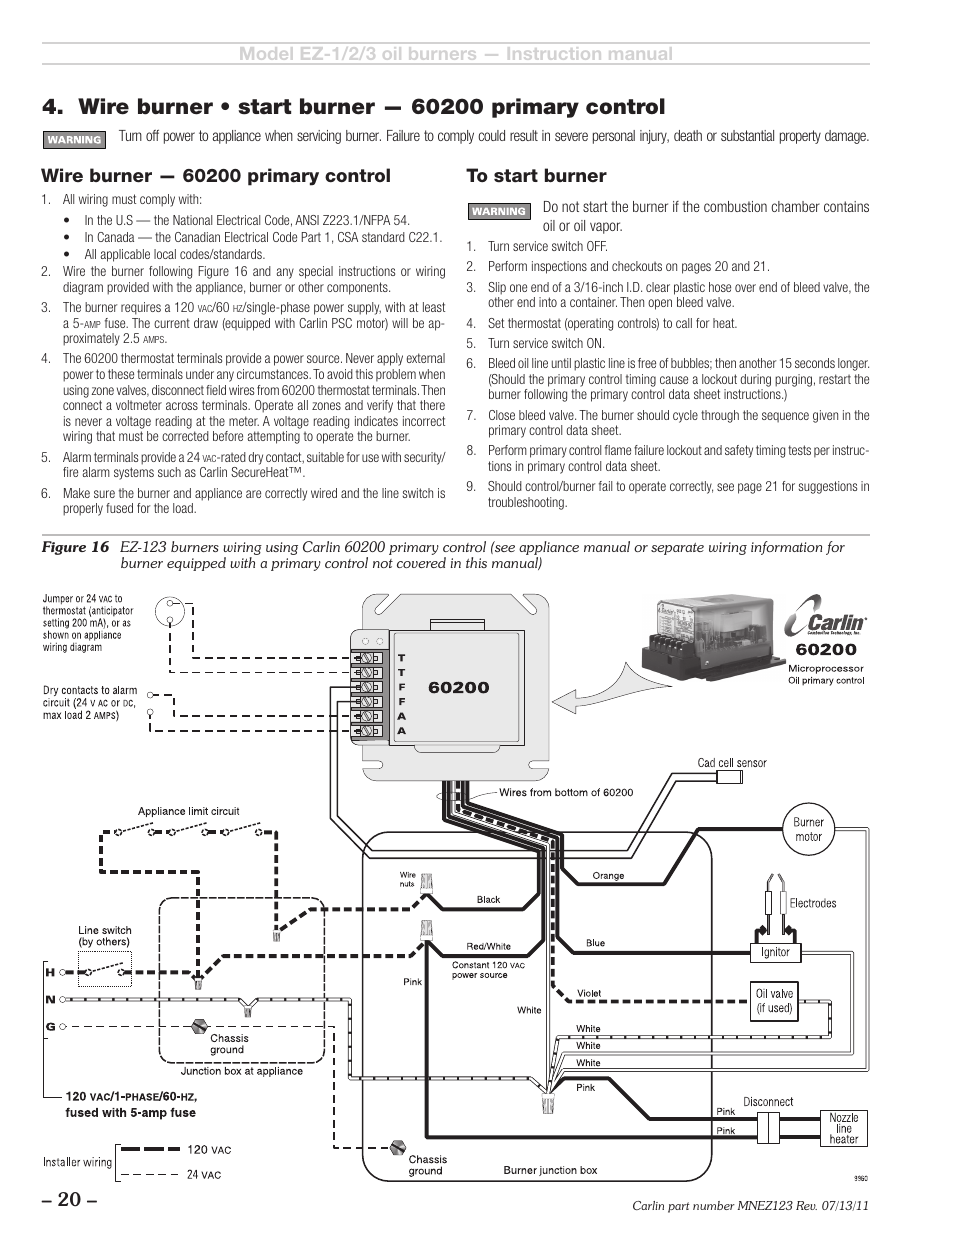 carlin ez 1_2_3 page20 carlin ez 1 2 3 user manual page 20 28 carlin 60200 wiring diagram at virtualis.co